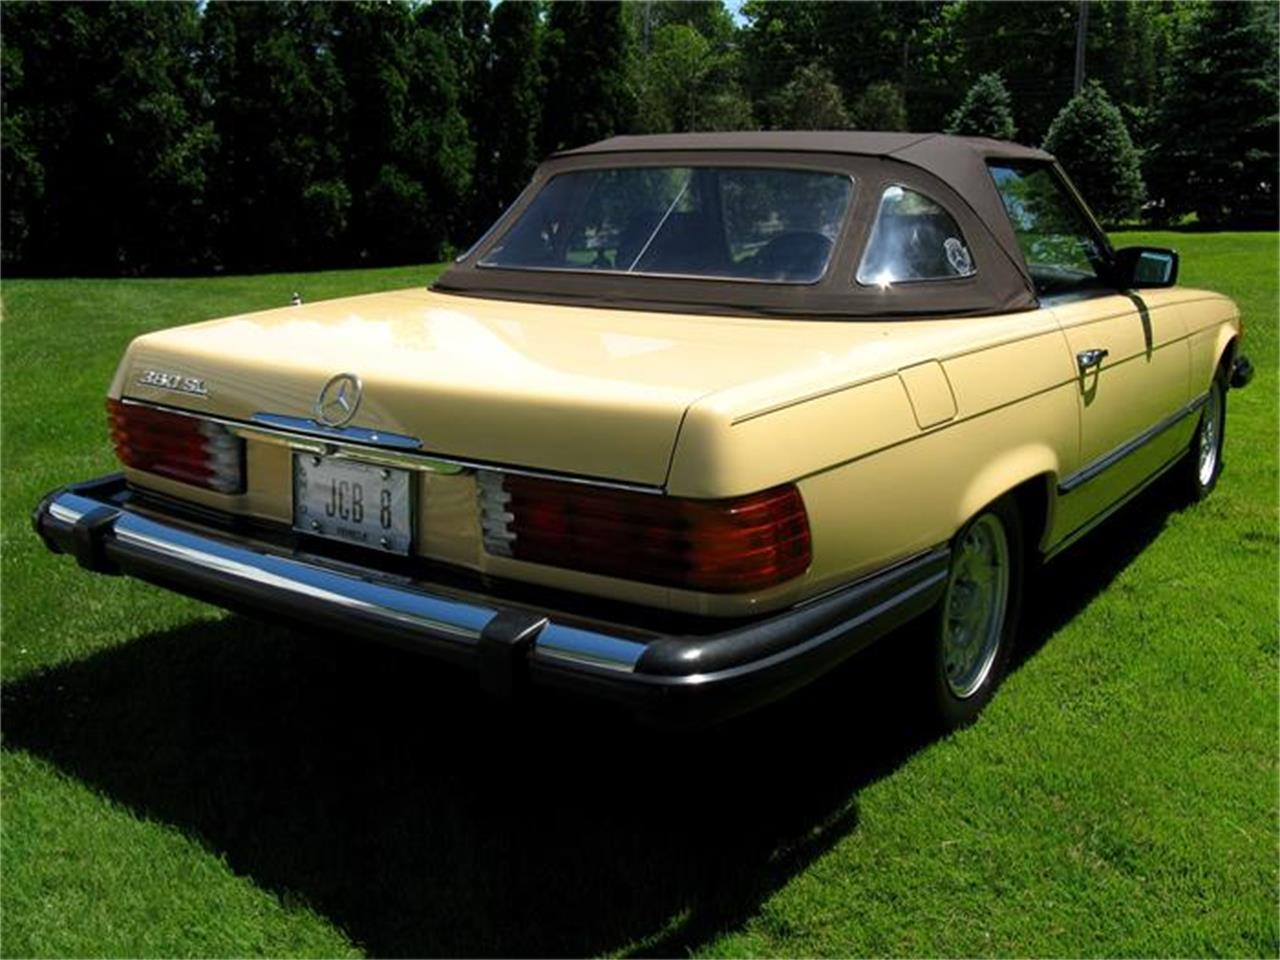 Large Picture of 1982 Mercedes-Benz 380SL located in Shaker Heights Ohio - $29,900.00 - BS6W